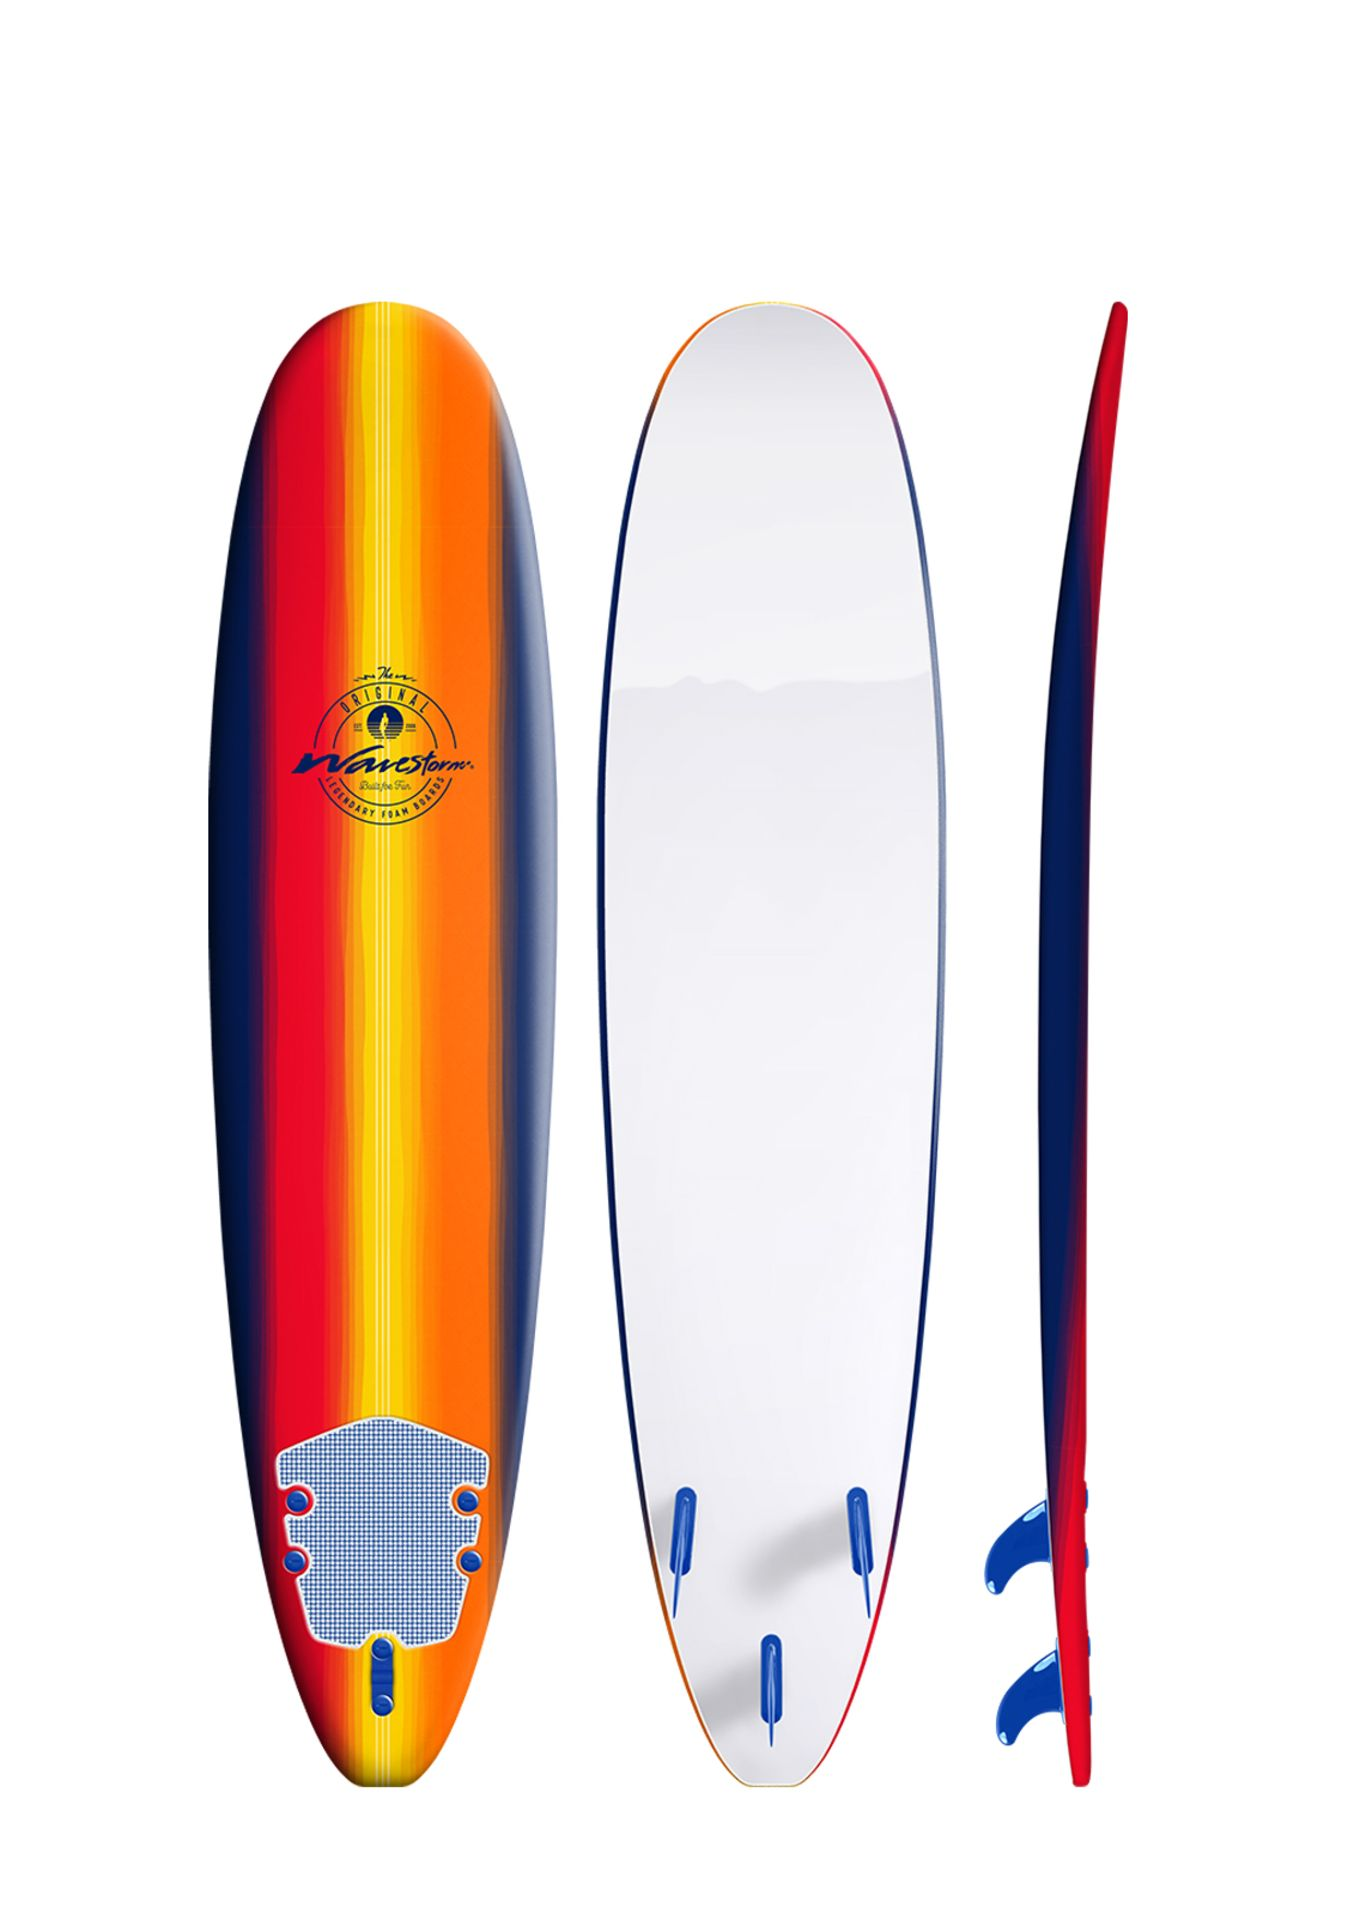 Lot 855 - 1 WAVESTORM 8FT/ 244CM CLASSIC SURFBOARD RRP £199 (HAS MARKS AND FEW CHIPS, GENERIC IMAGE GUIDE)